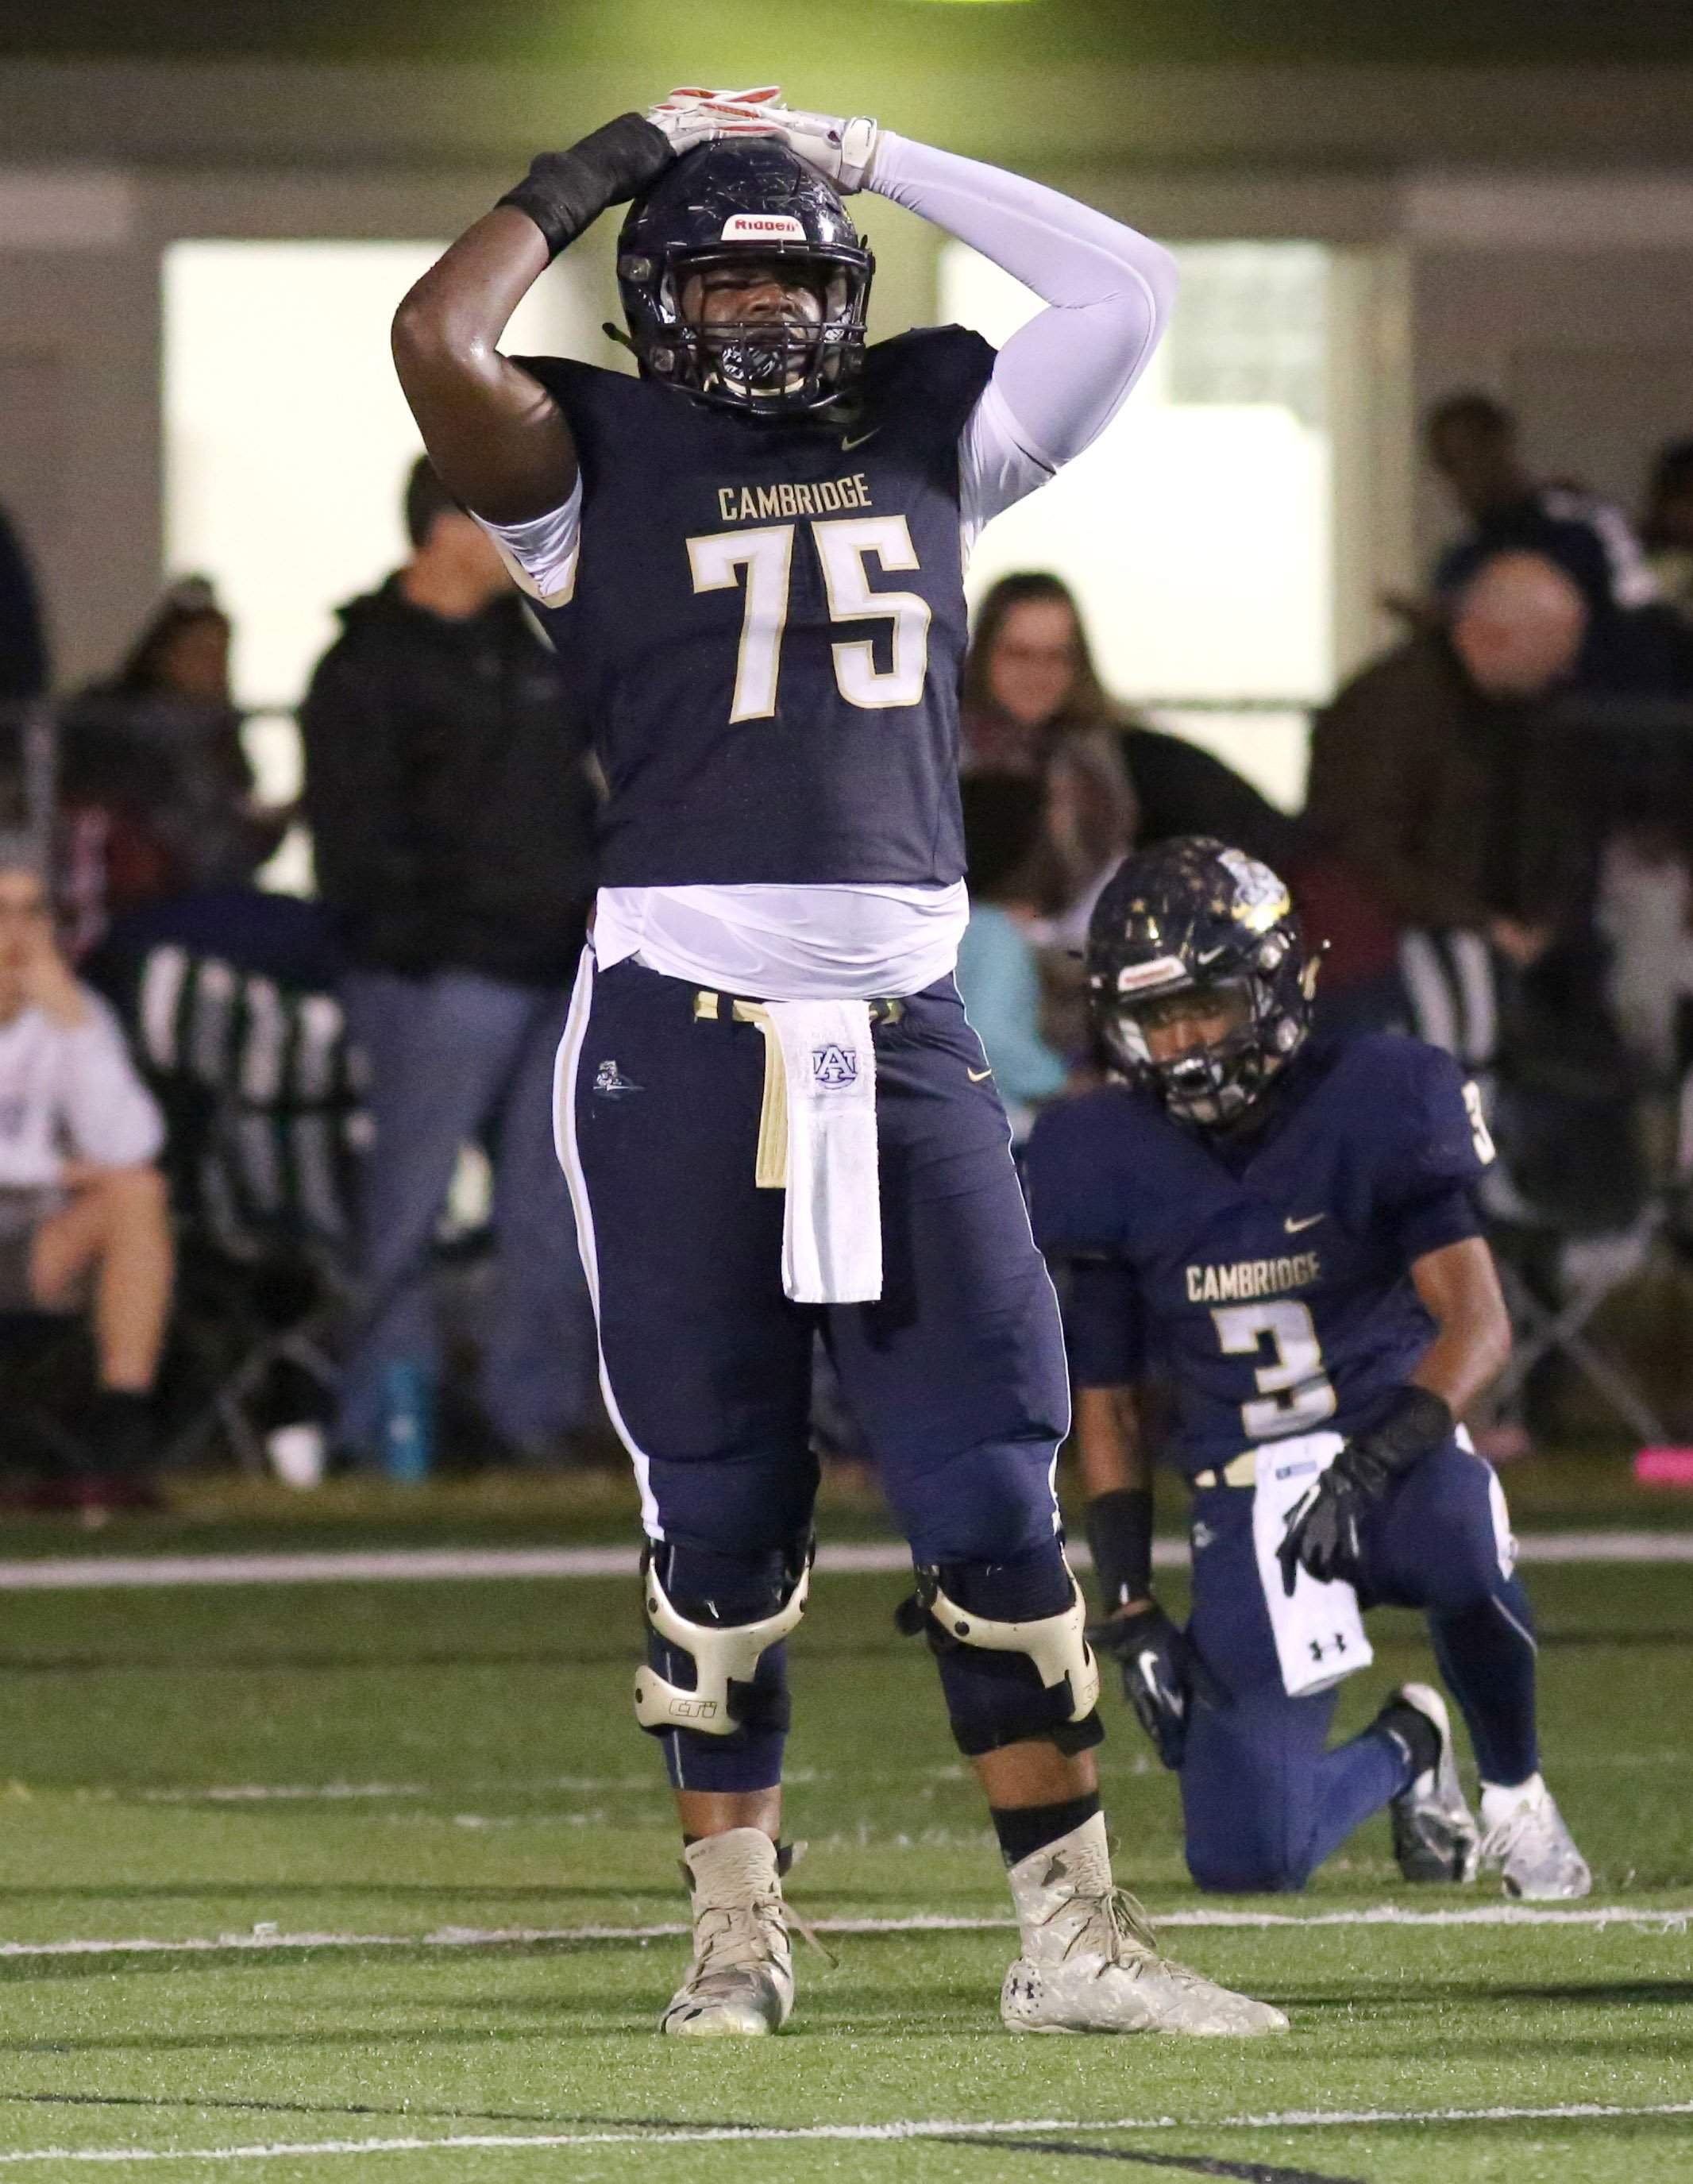 online store 2db38 3f236 Cambridge Christian's Richard Gouraige soaks up Under Armour ...